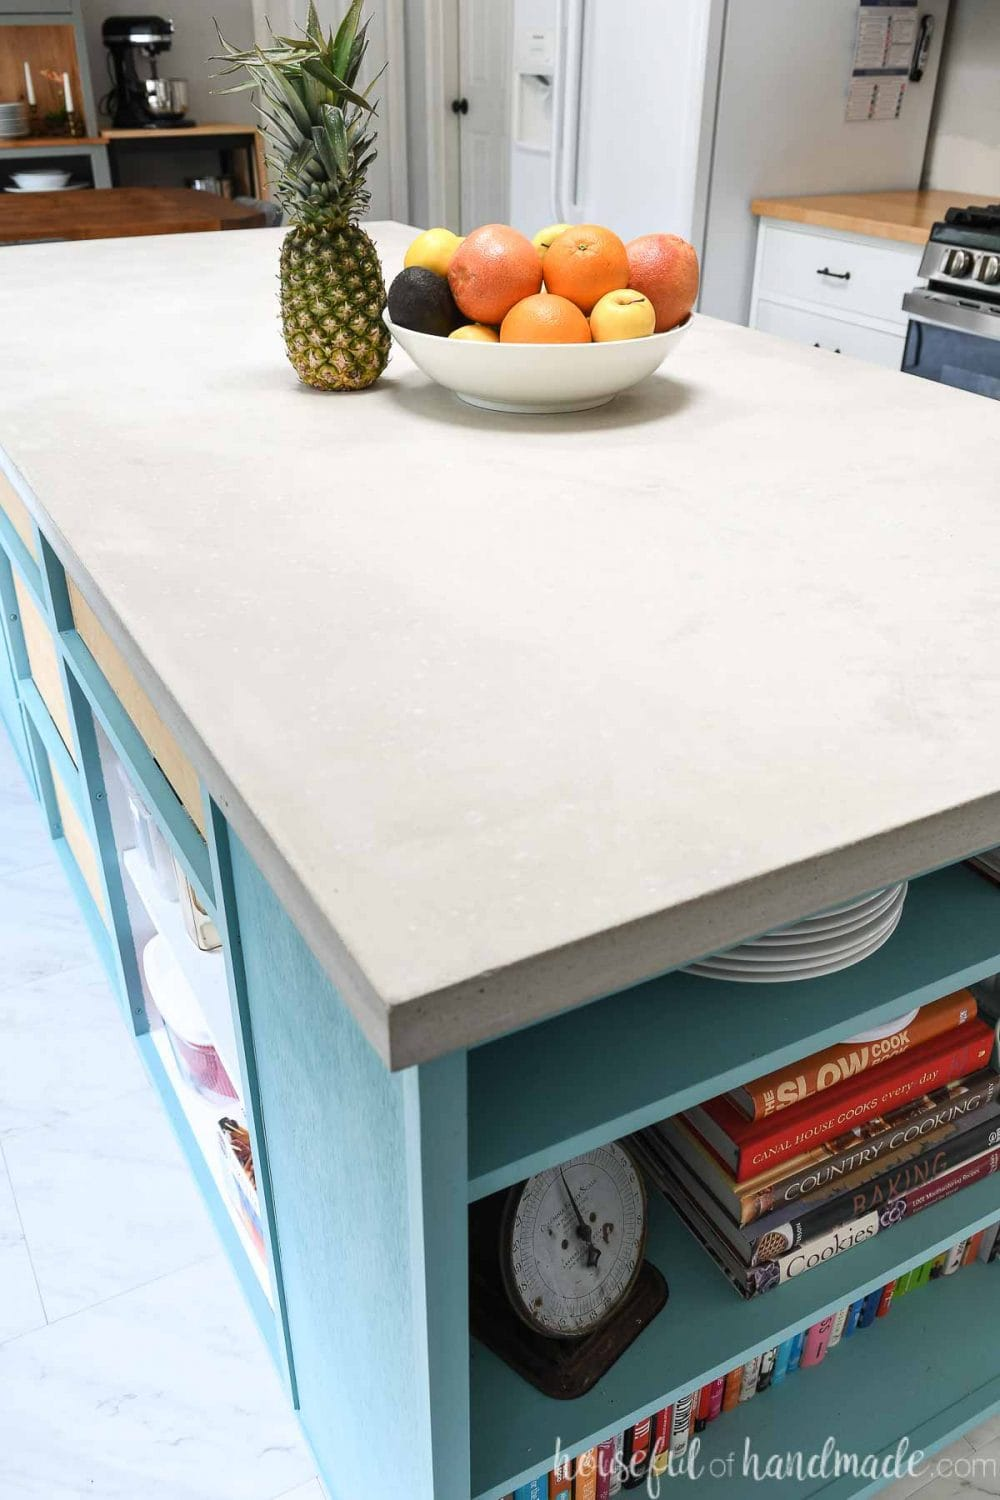 Looking down on the kitchen countertop made from light colored concrete on a blue kitchen island with a bookcase in it.